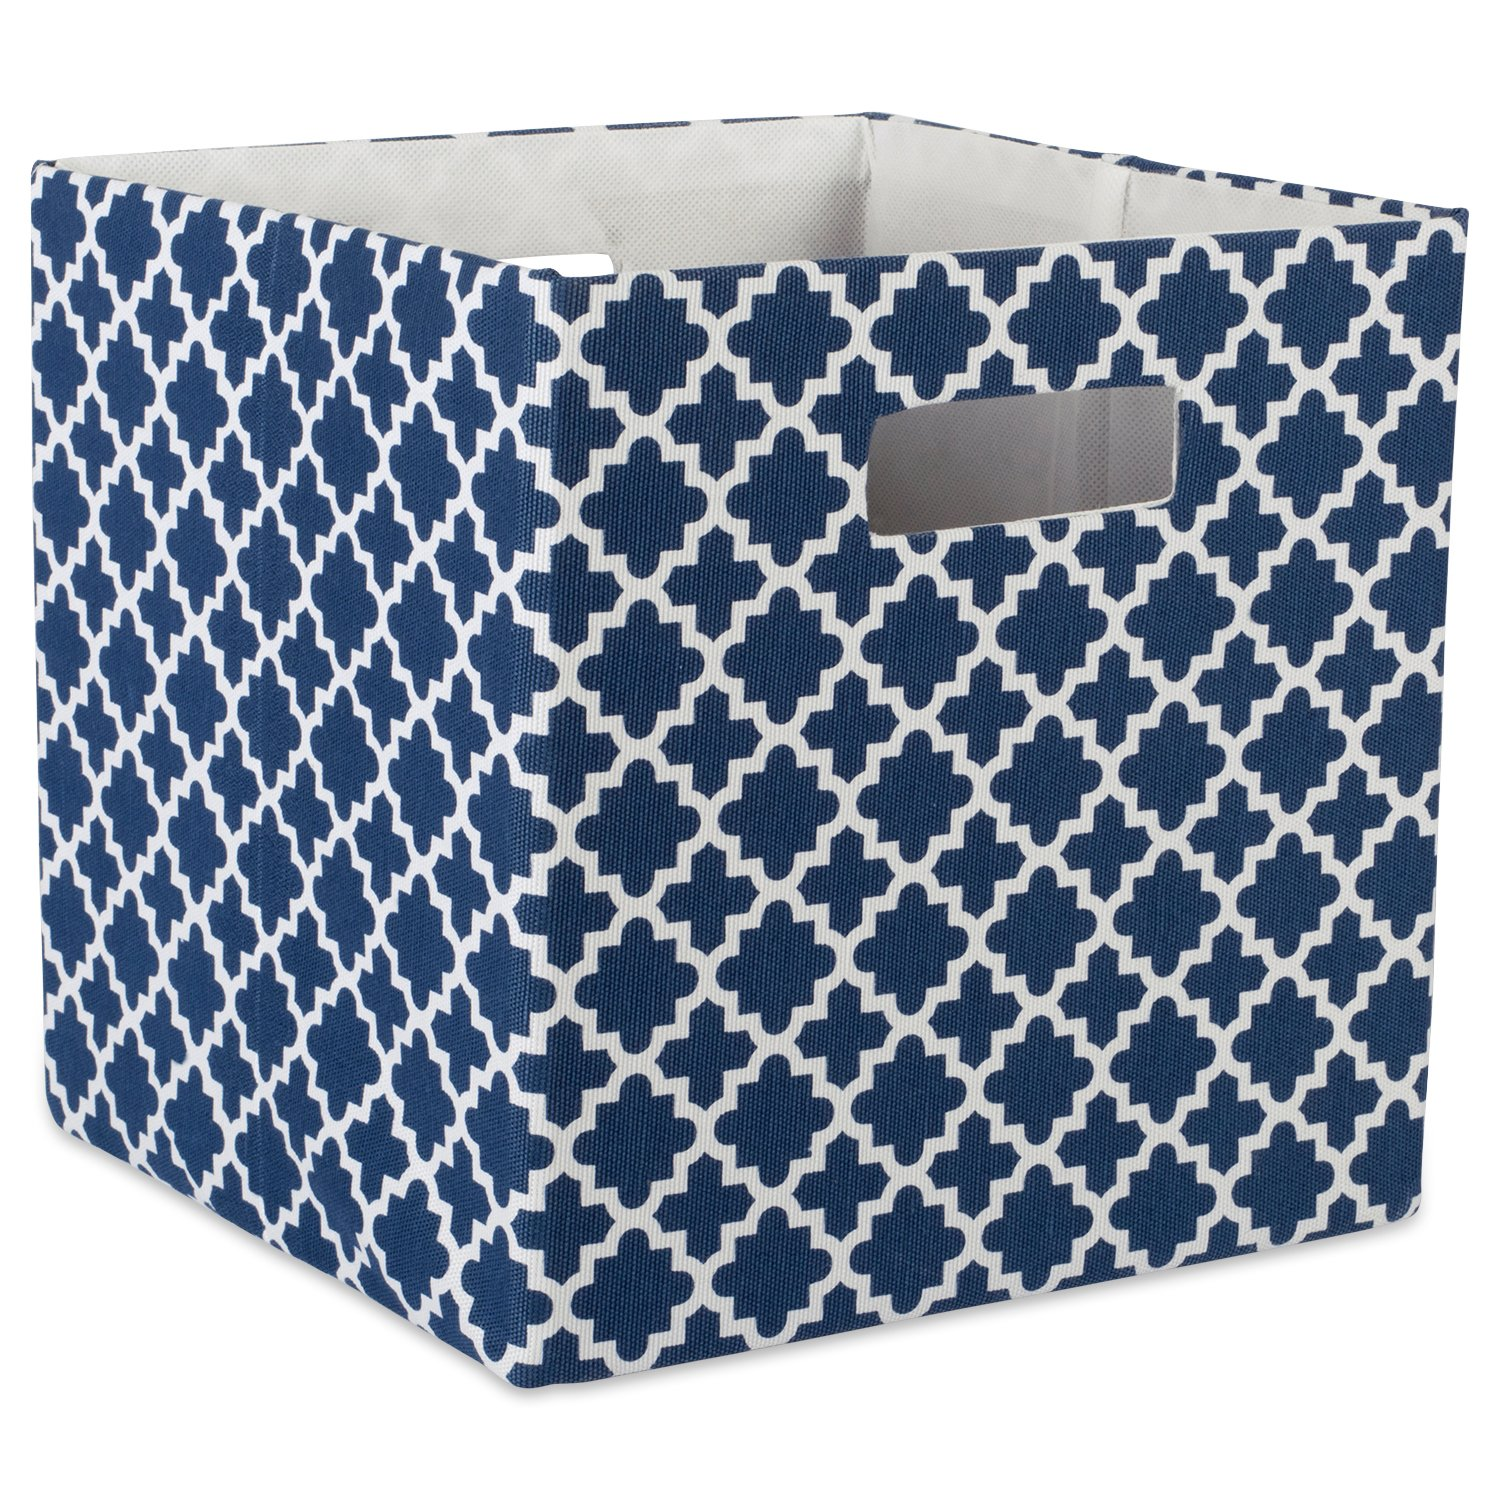 "DII Hard Sided Collapsible Fabric Storage Container for Nursery, Offices, & Home Organization, (13x13x13"") - Lattice Nautical Blue"